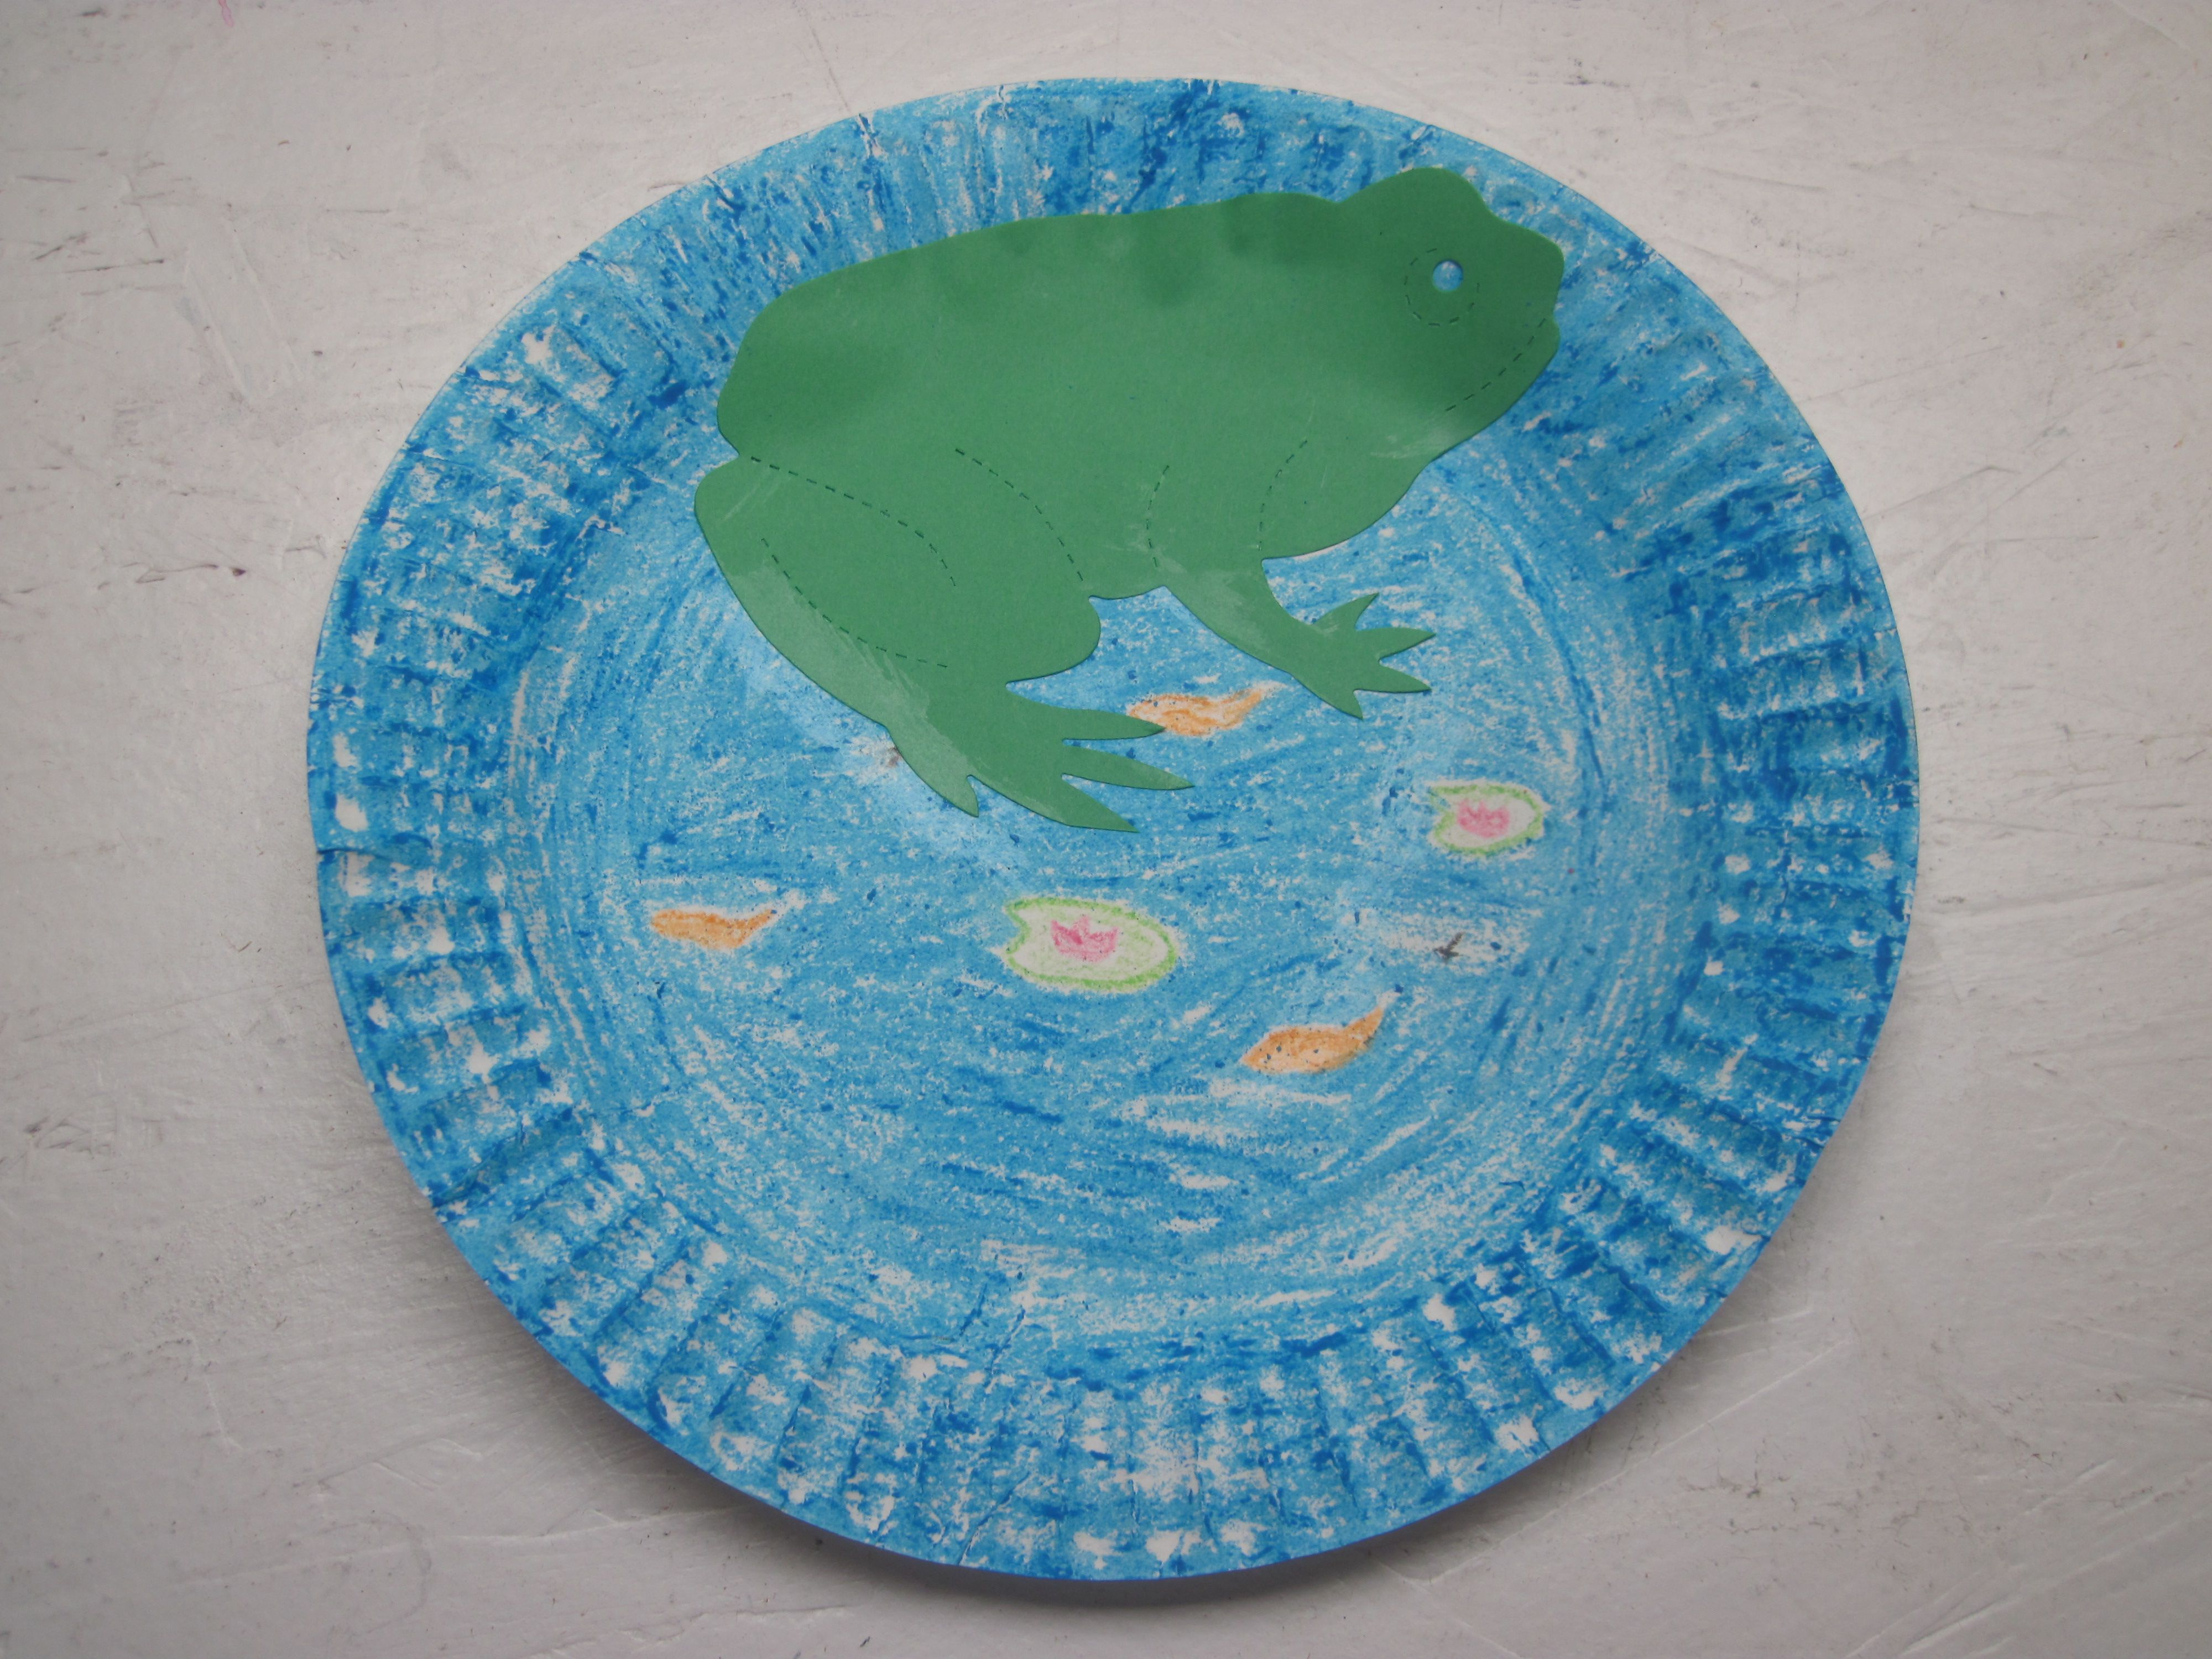 SCIENCE Frog in a Pond    SUPPLIES Paper plates Crayons Frog template Glue sticks DIRECTIONS 1. Get one paper plate. 2. Color the pond and add who we ... & SCIENCE: Frog in a Pond    SUPPLIES: Paper plates Crayons Frog ...